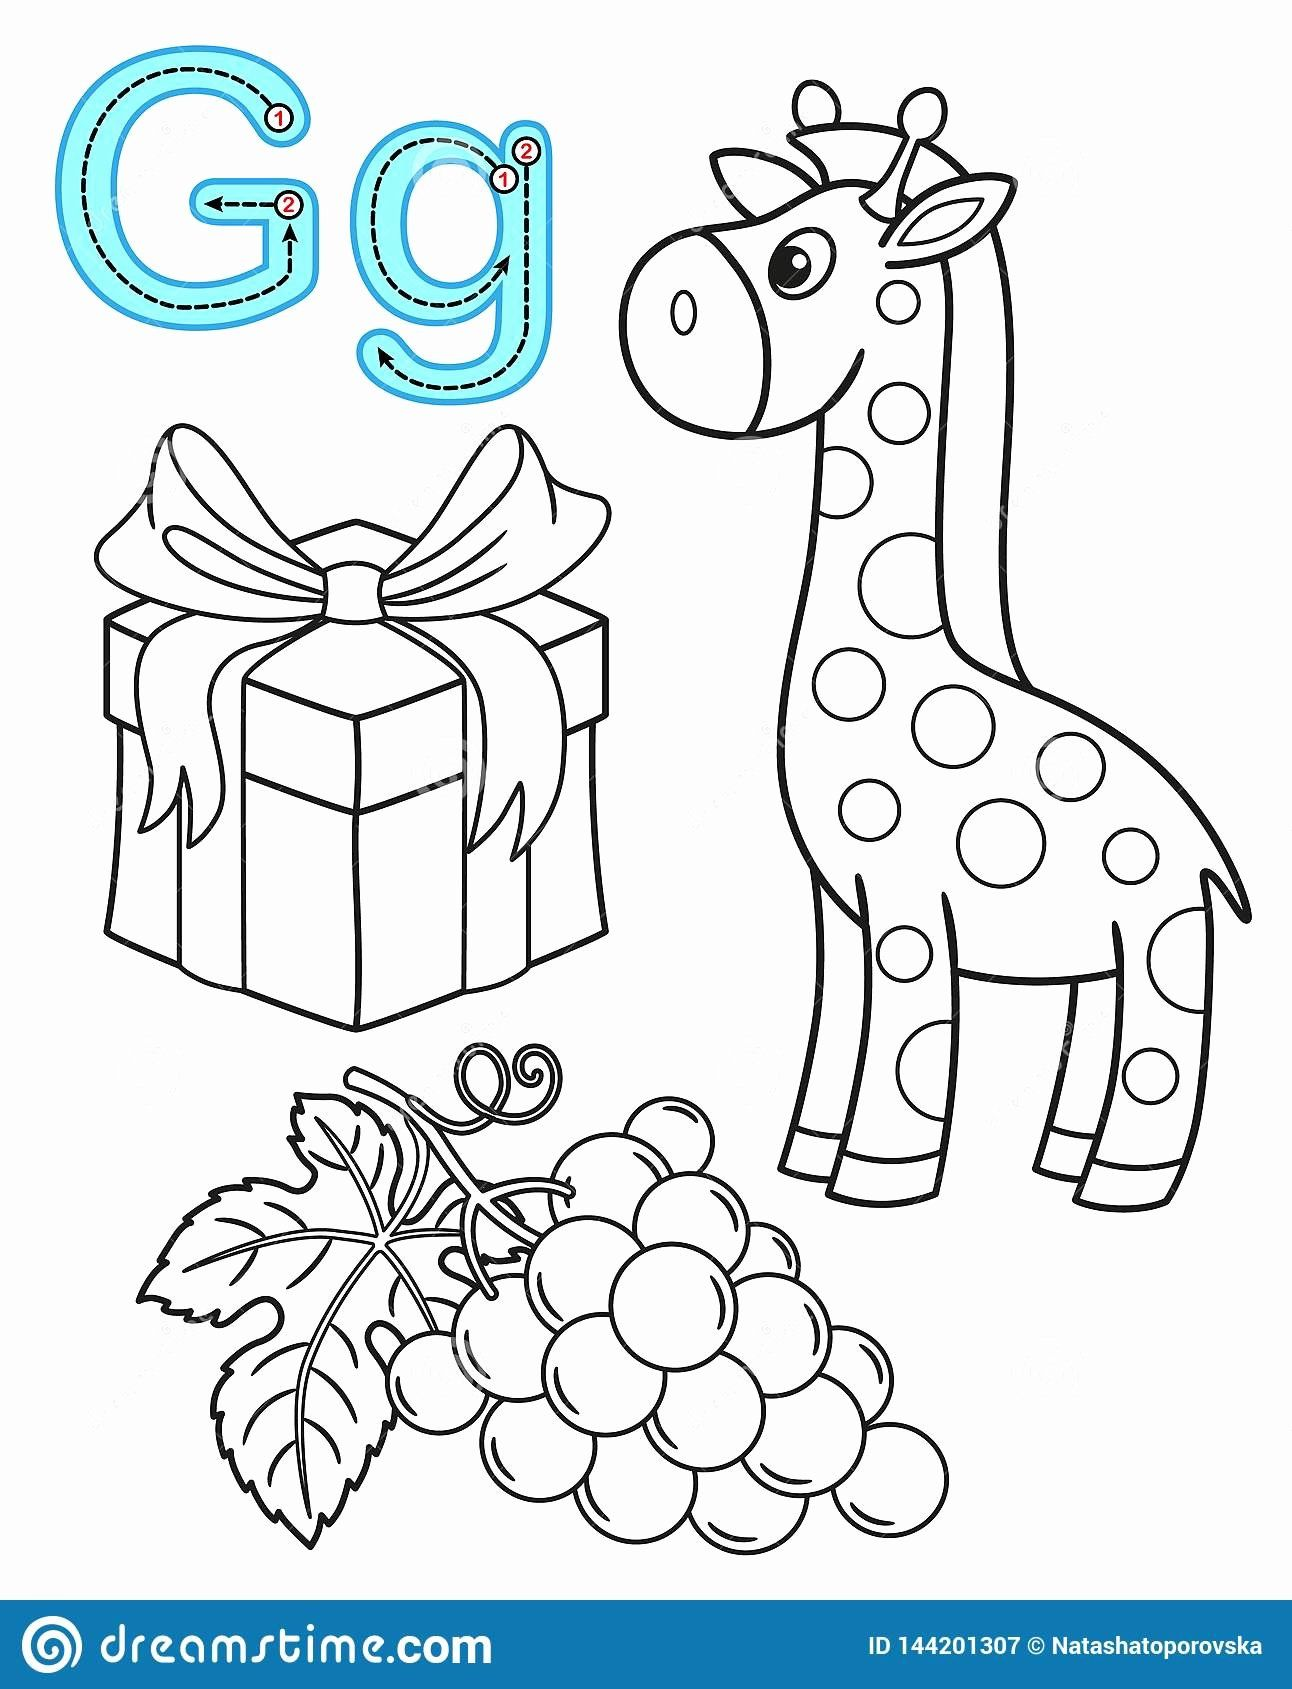 Pin on Best Printable Alphabet Coloring Pages